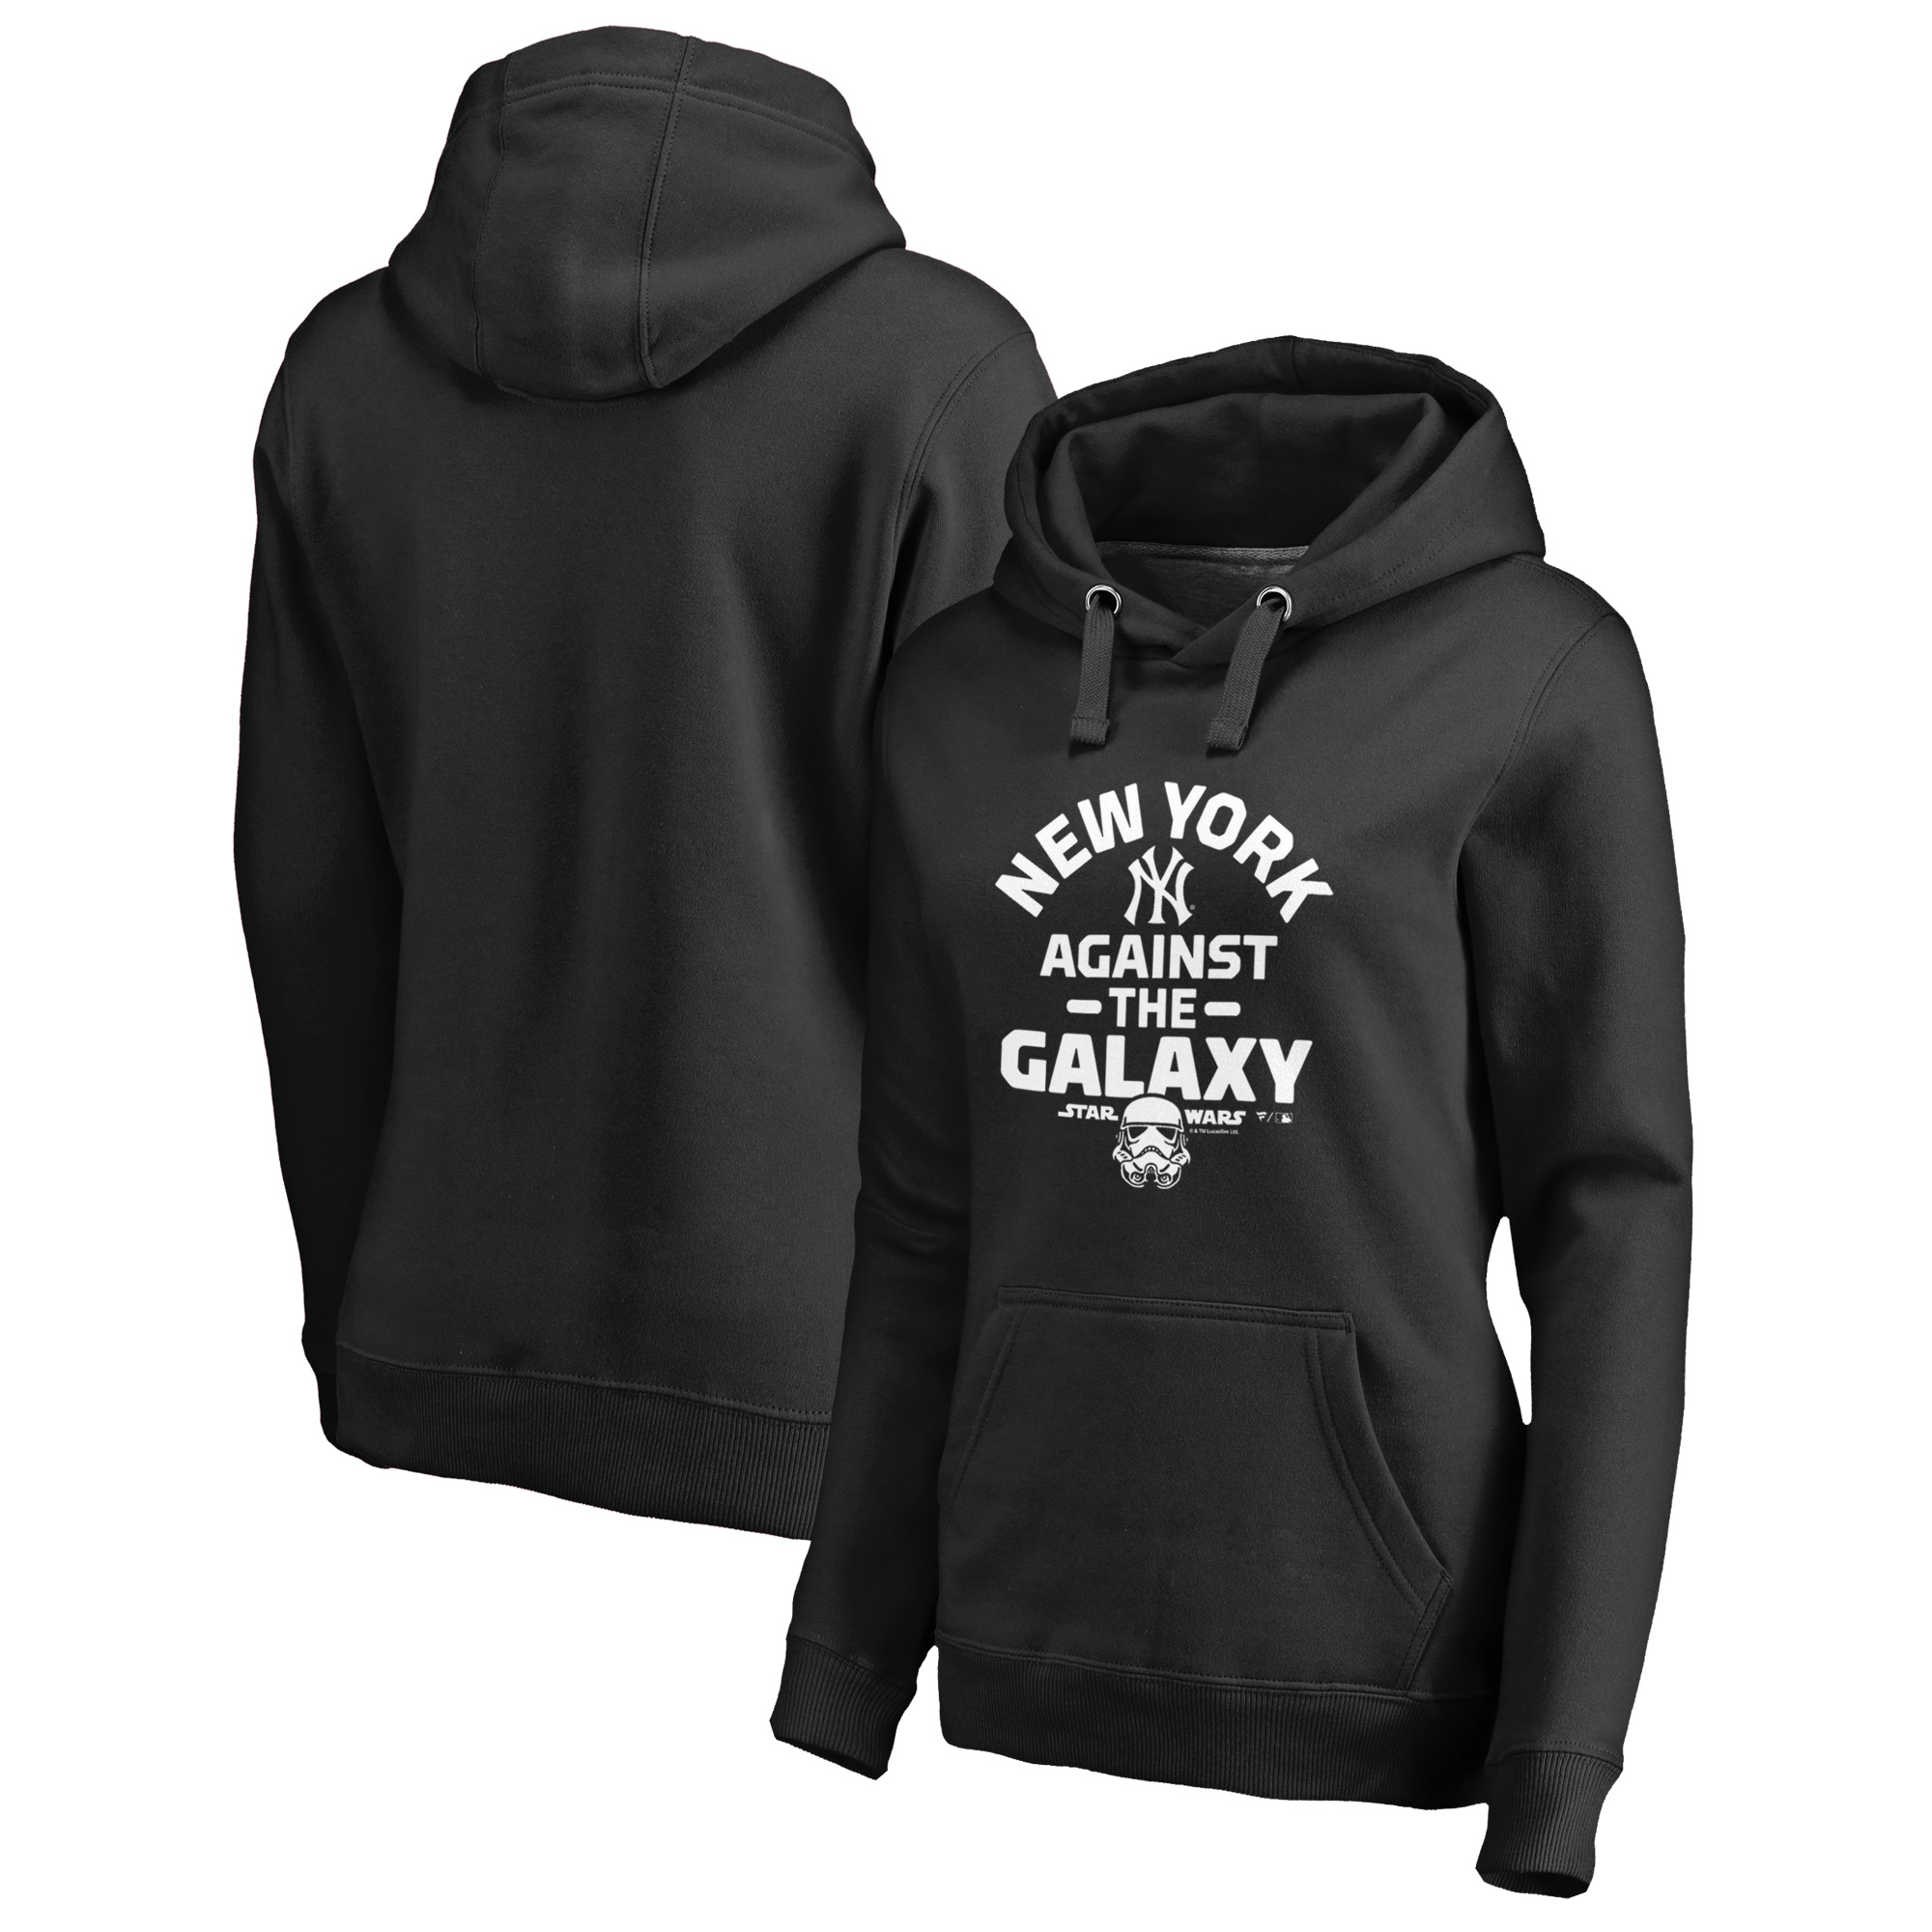 New York Yankees Fanatics Branded Women's MLB Star Wars Against The Galaxy Pullover Hoodie - Black